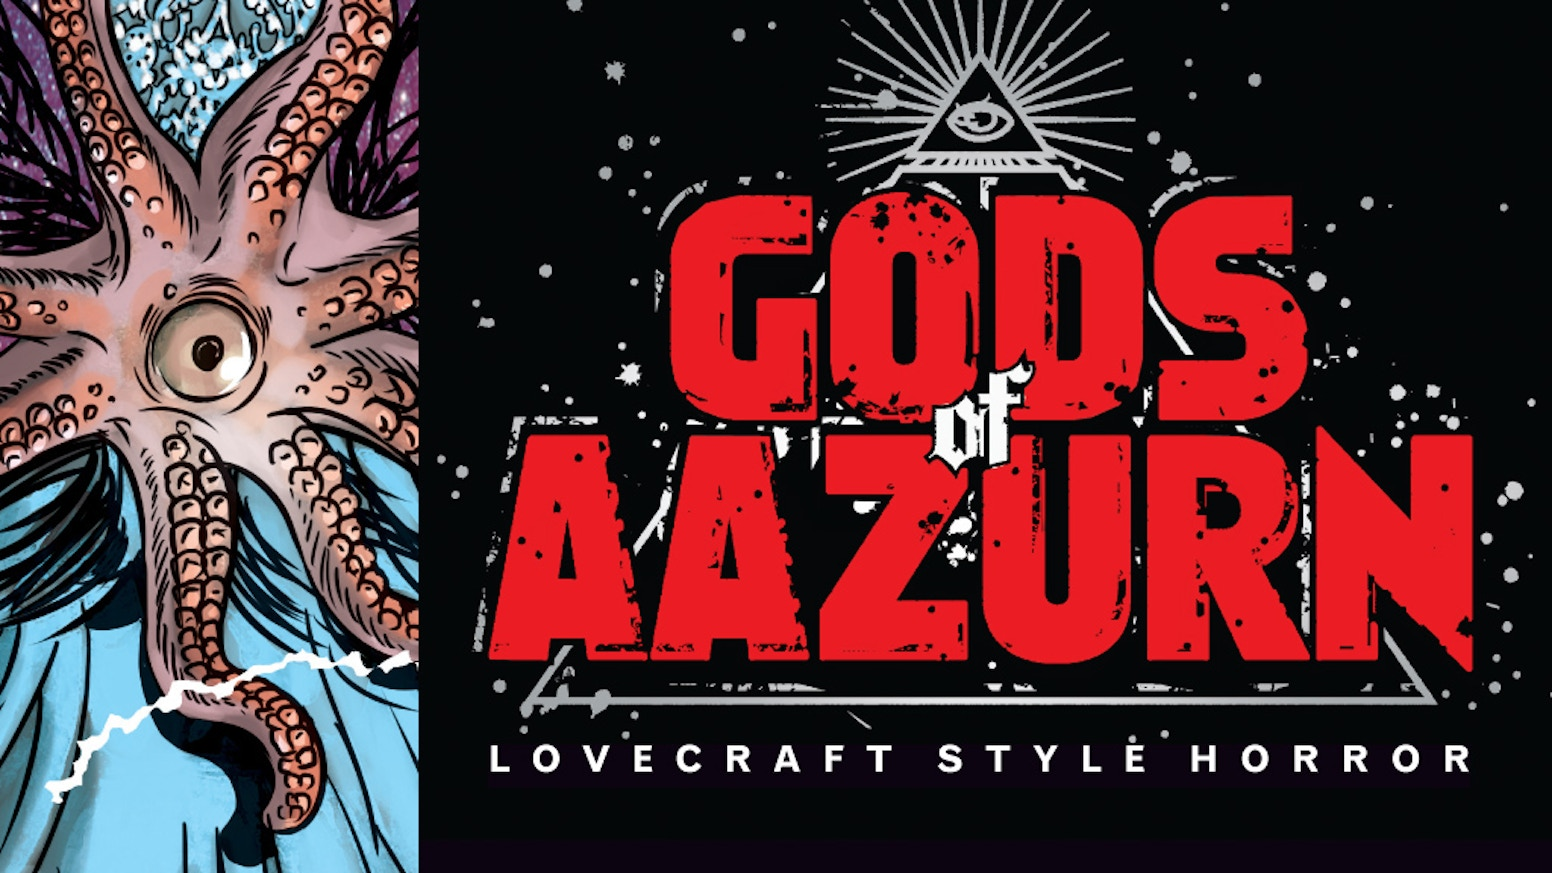 In glorious service to our Aazurn overlords, Gods of Aazurn is four, mature-reader comics with horrific gods and creepy monsters.